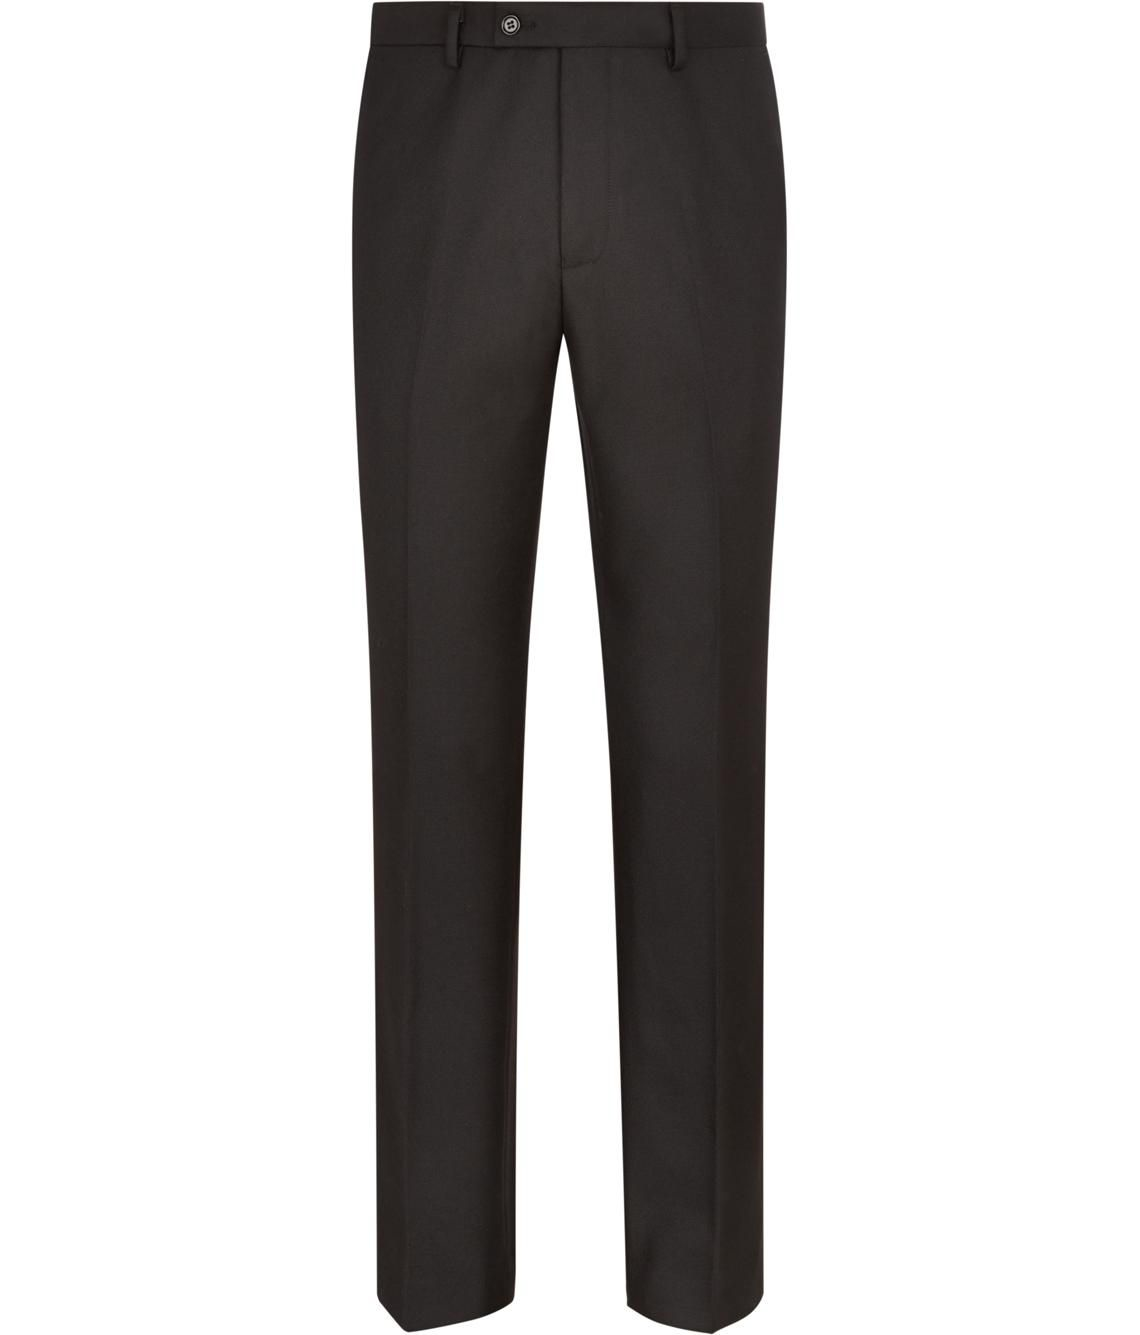 Austin Reed Wool Flat Front Twill Trousers In Black For Men Lyst